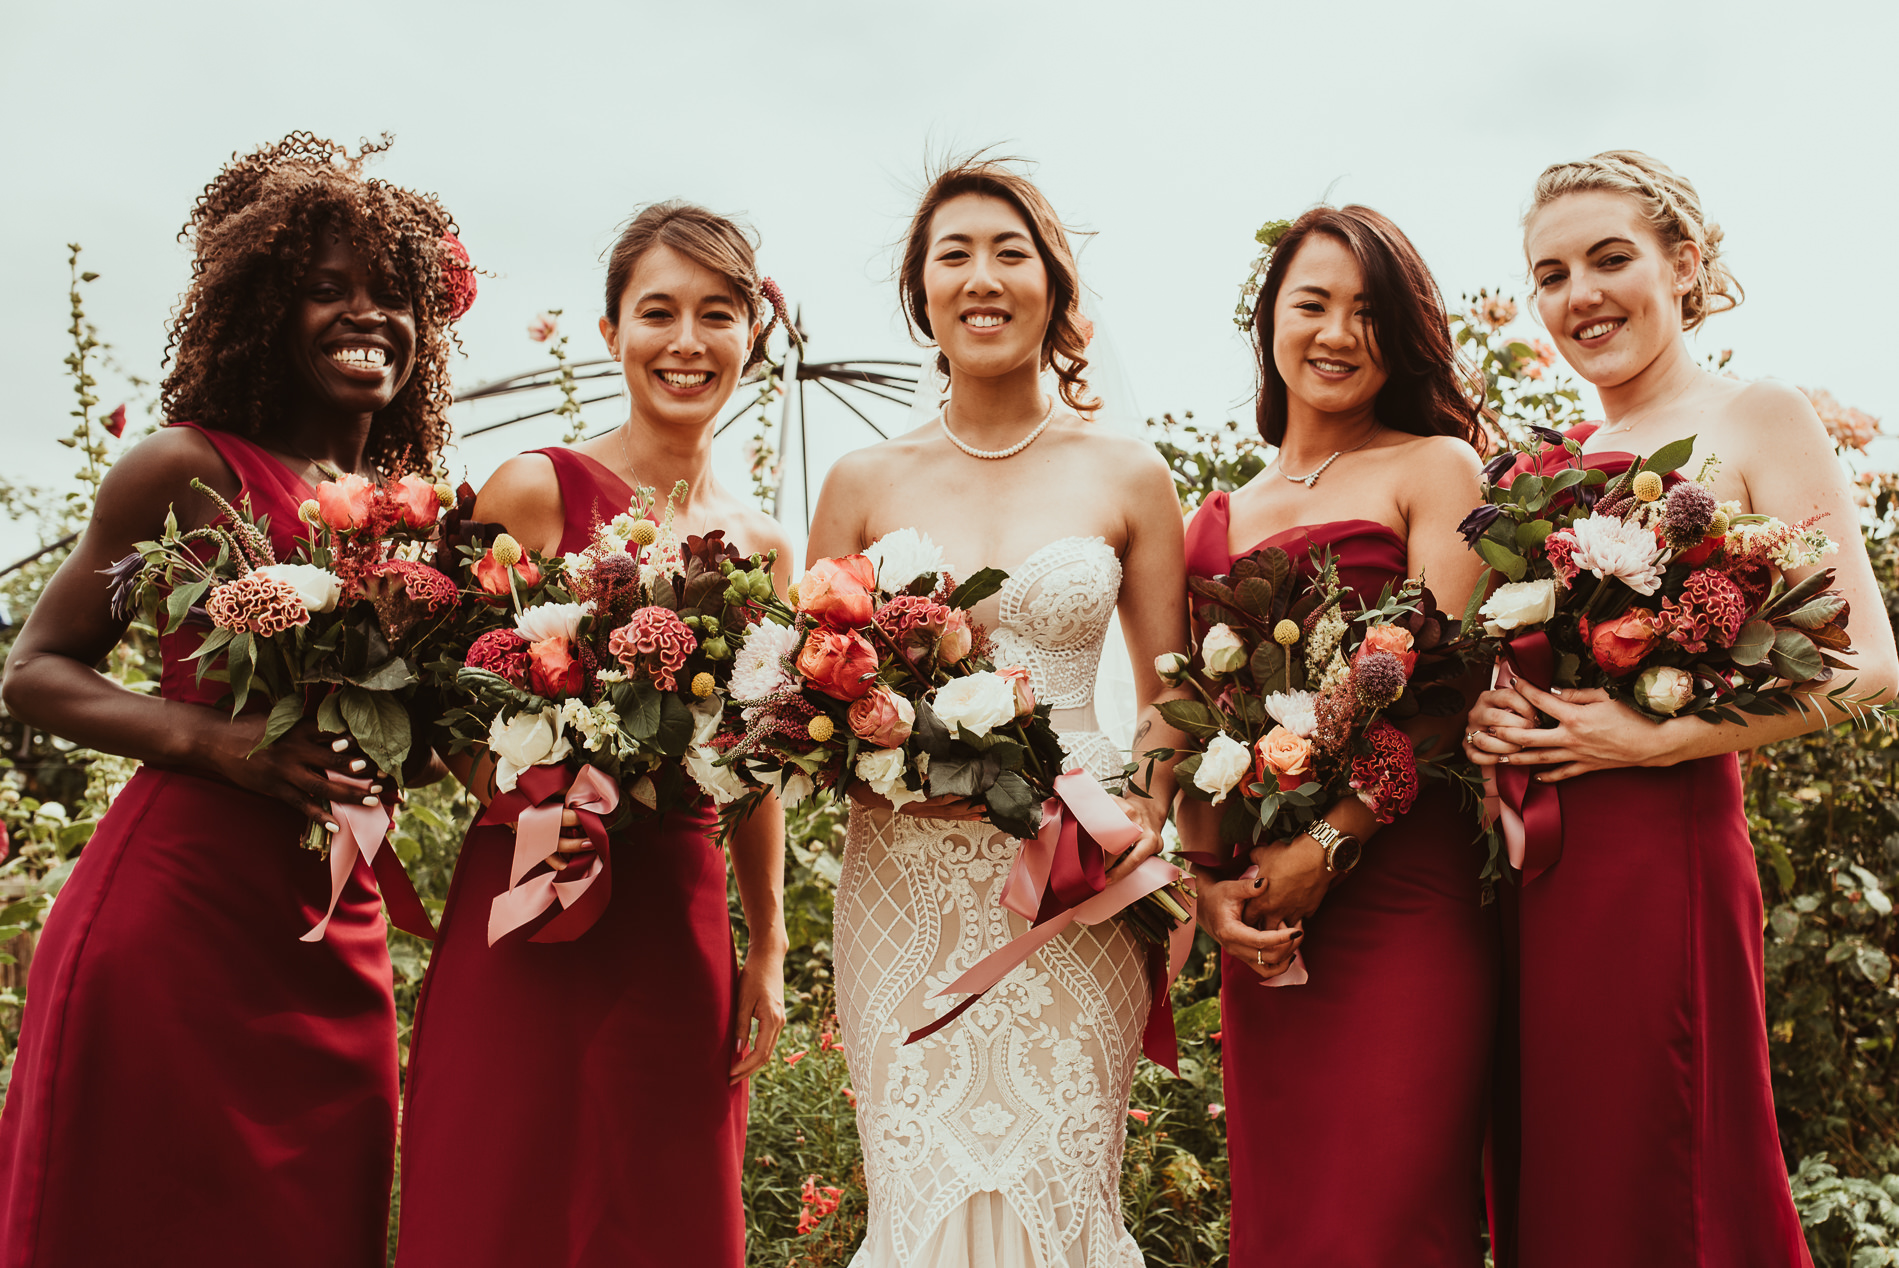 Bridesmaids and wedding flowers from the Flower Monger at White Dove Barns